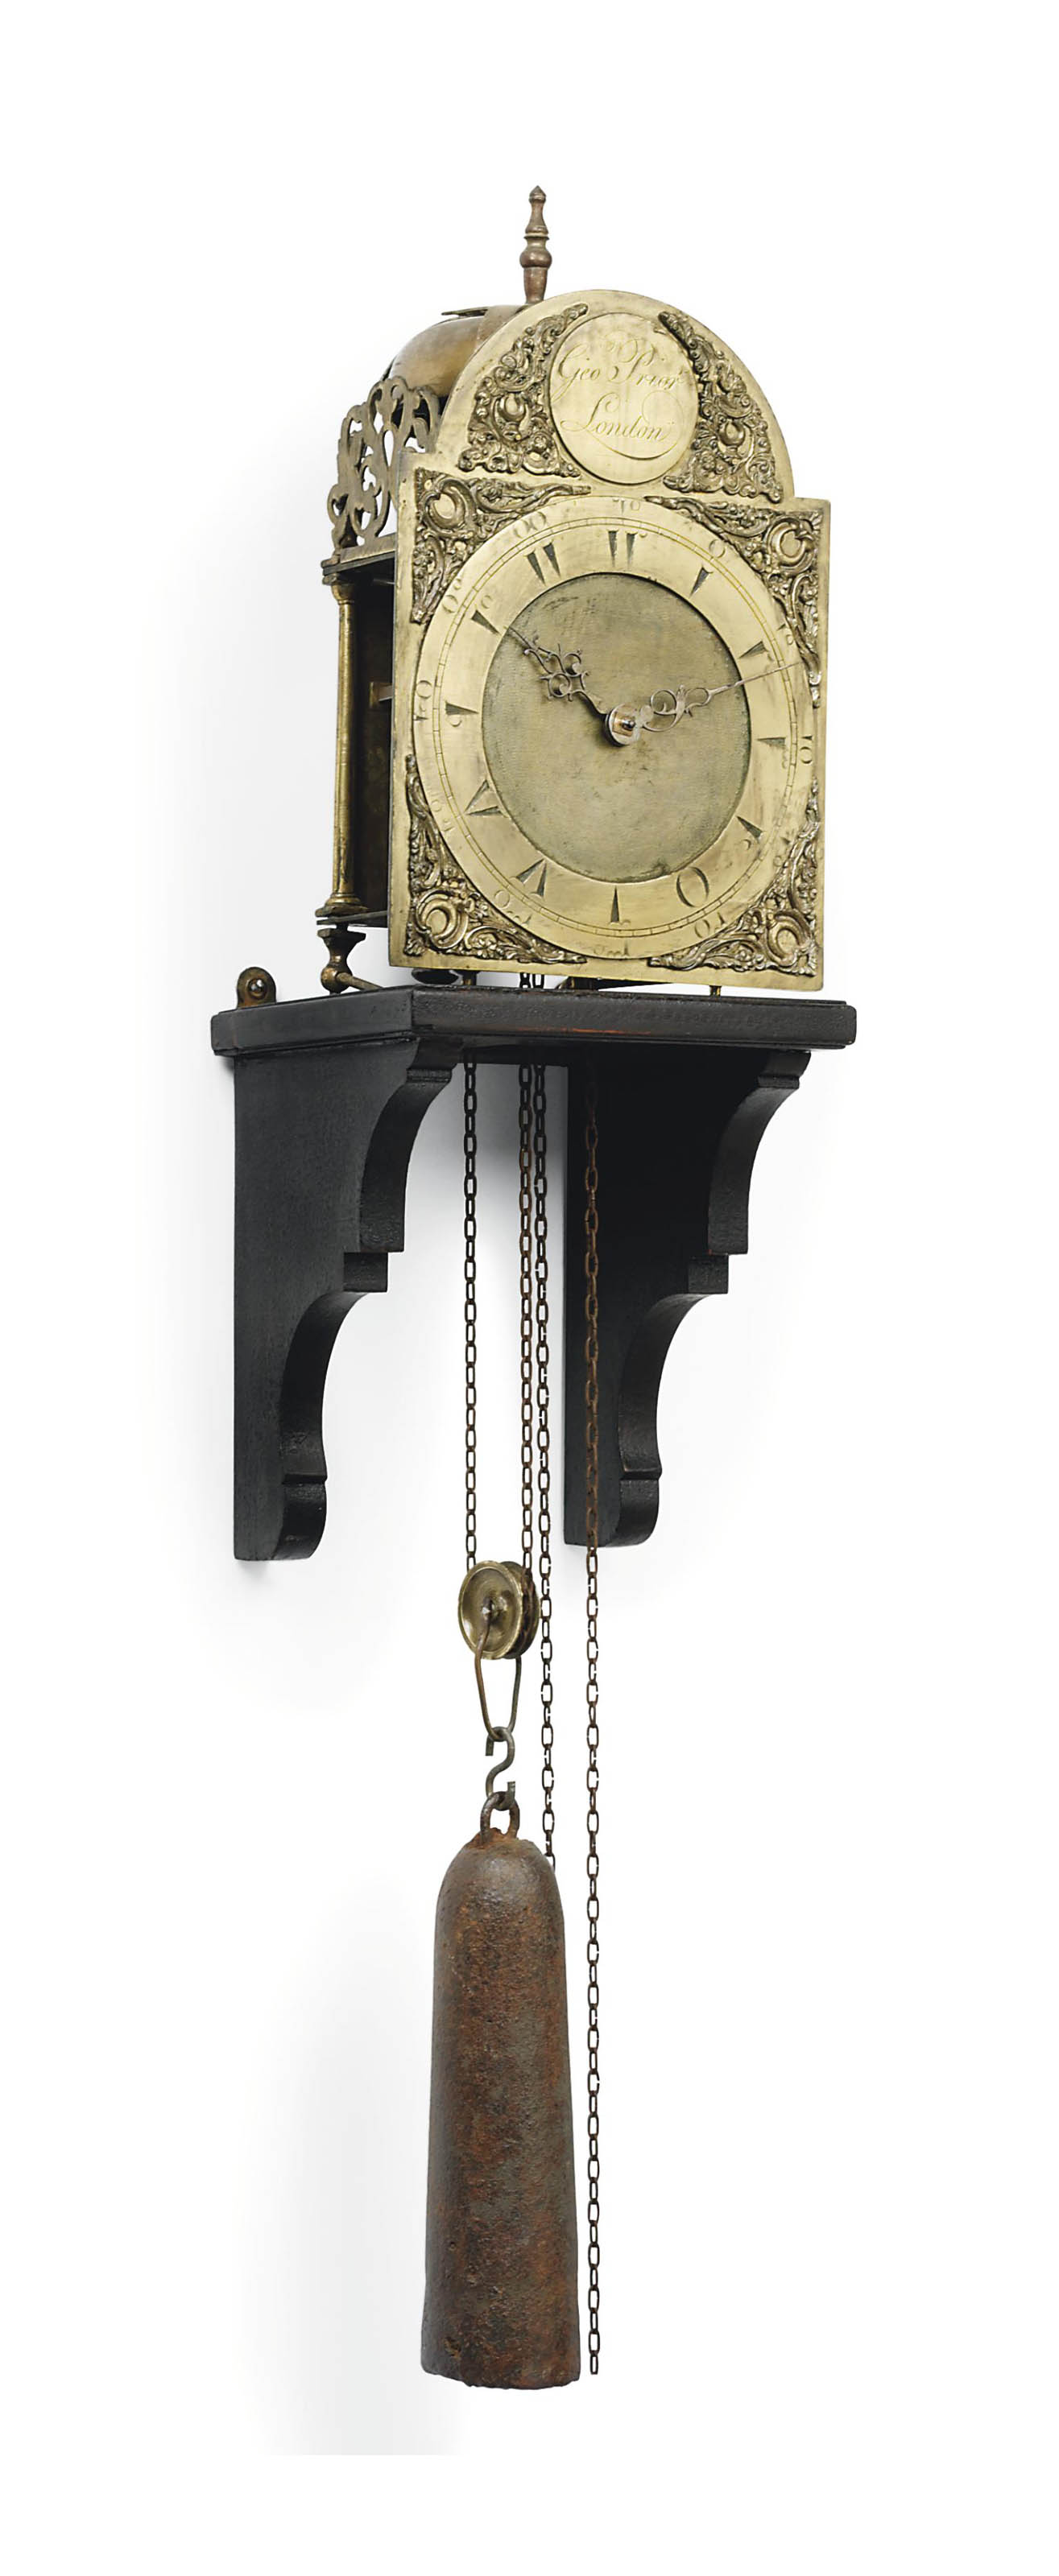 A GEORGE III BRASS STRIKING LANTERN CLOCK FOR THE TURKISH MARKET